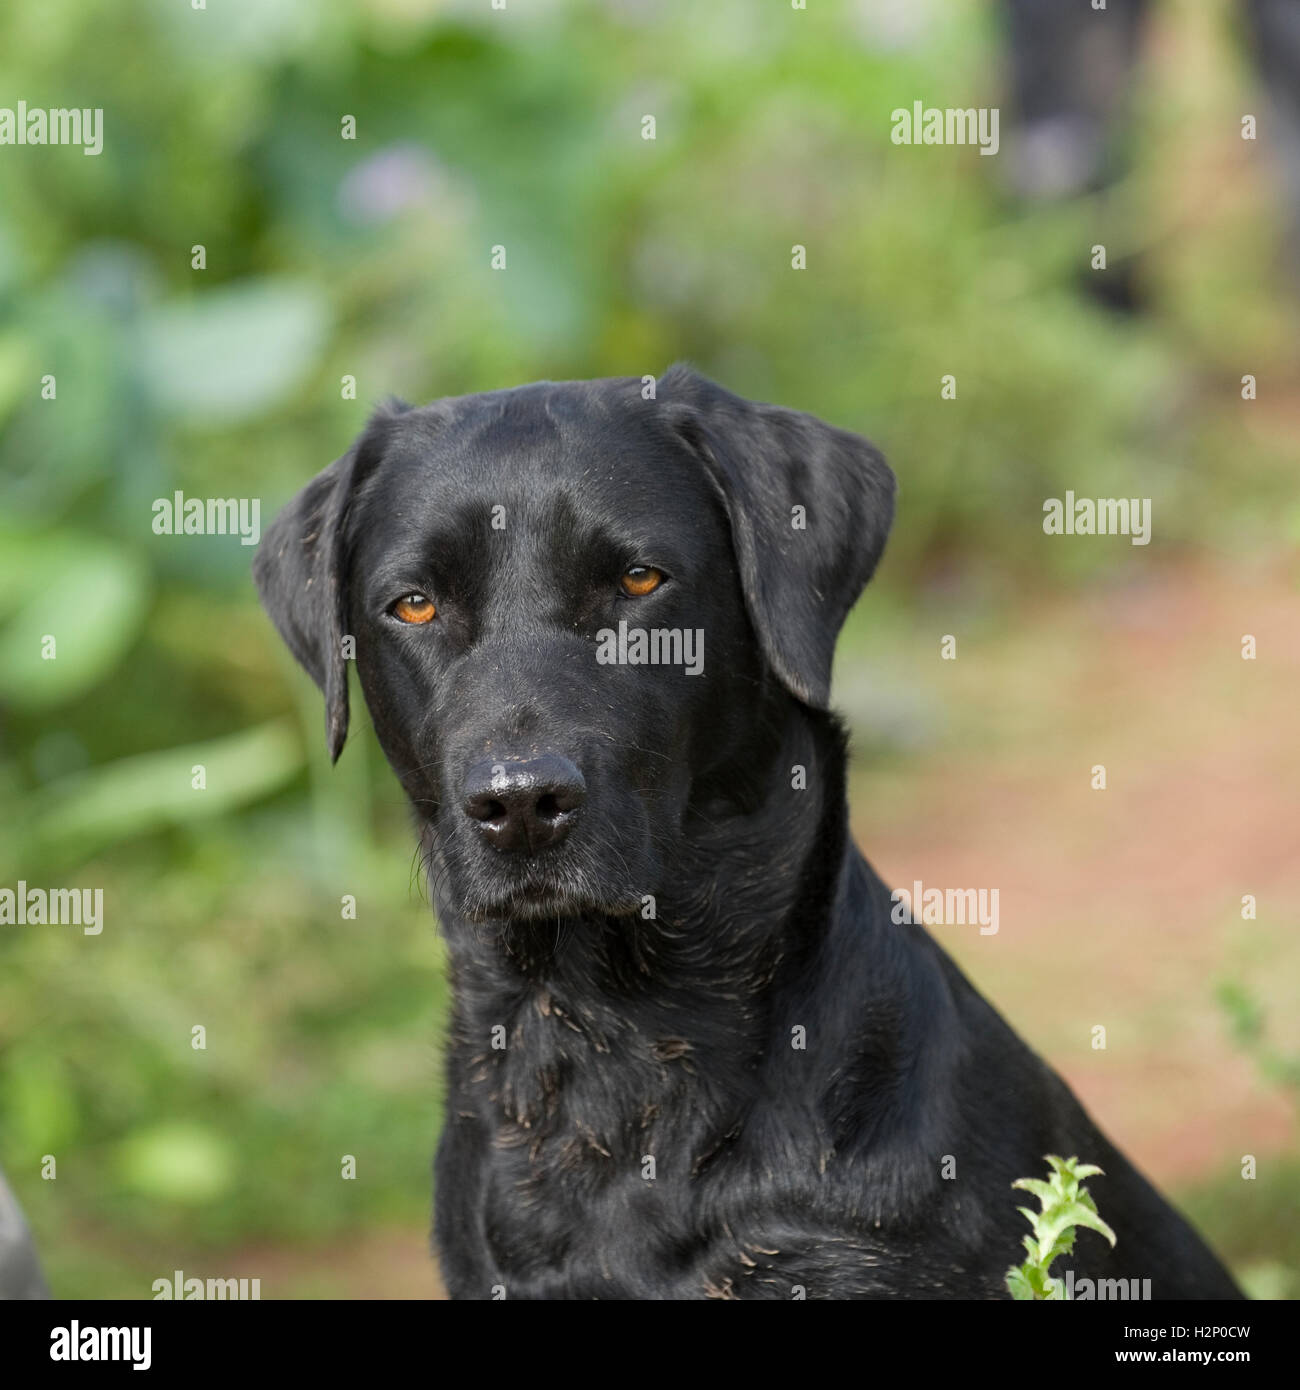 black labrador retriever - Stock Image